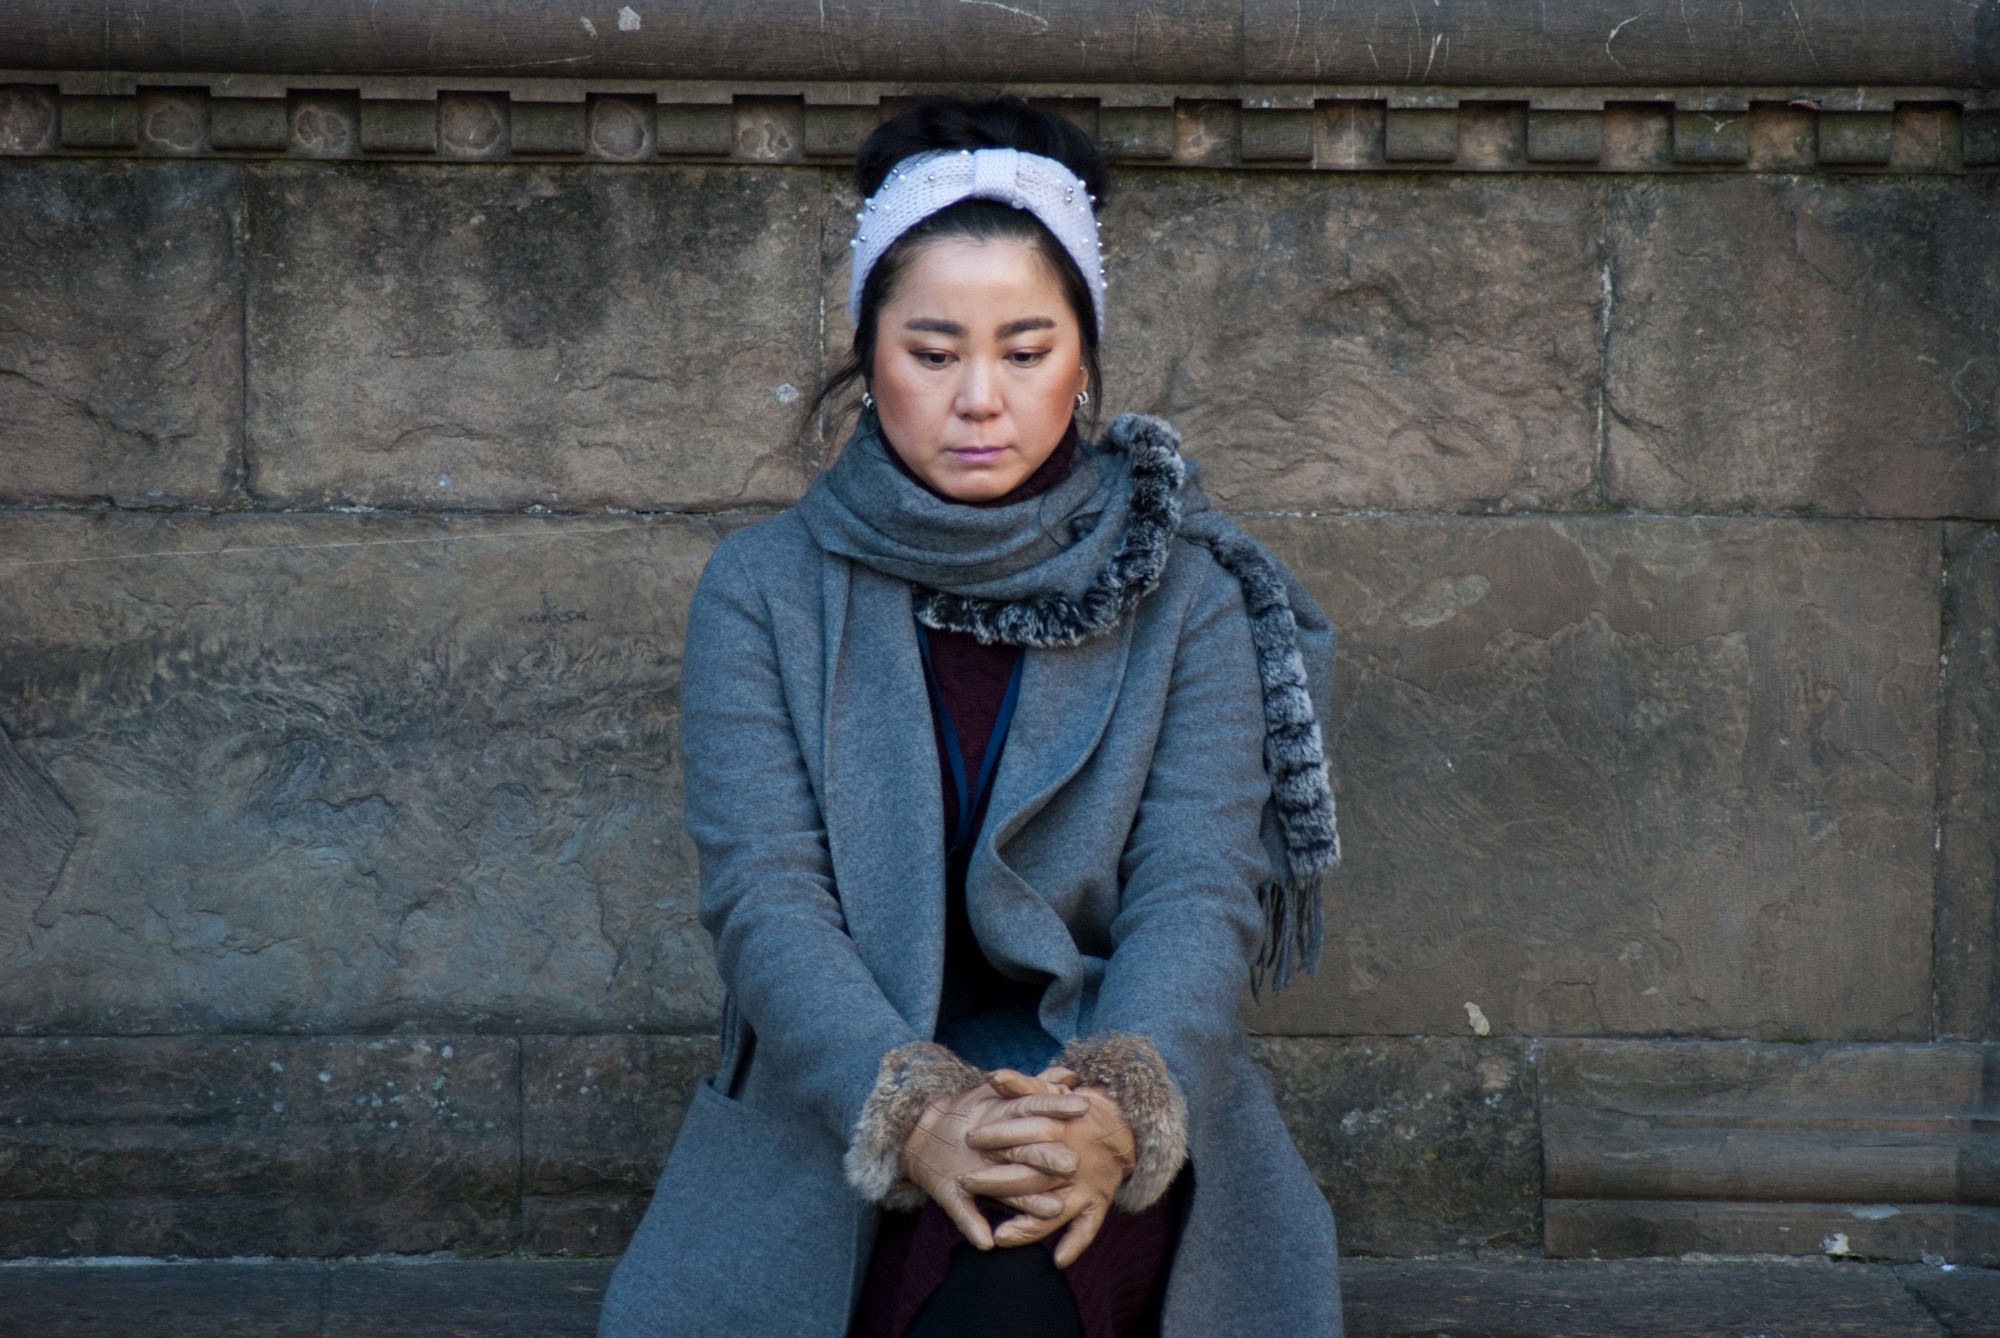 A woman sits quietly next to a stone wall with hands folded and eyes downcast